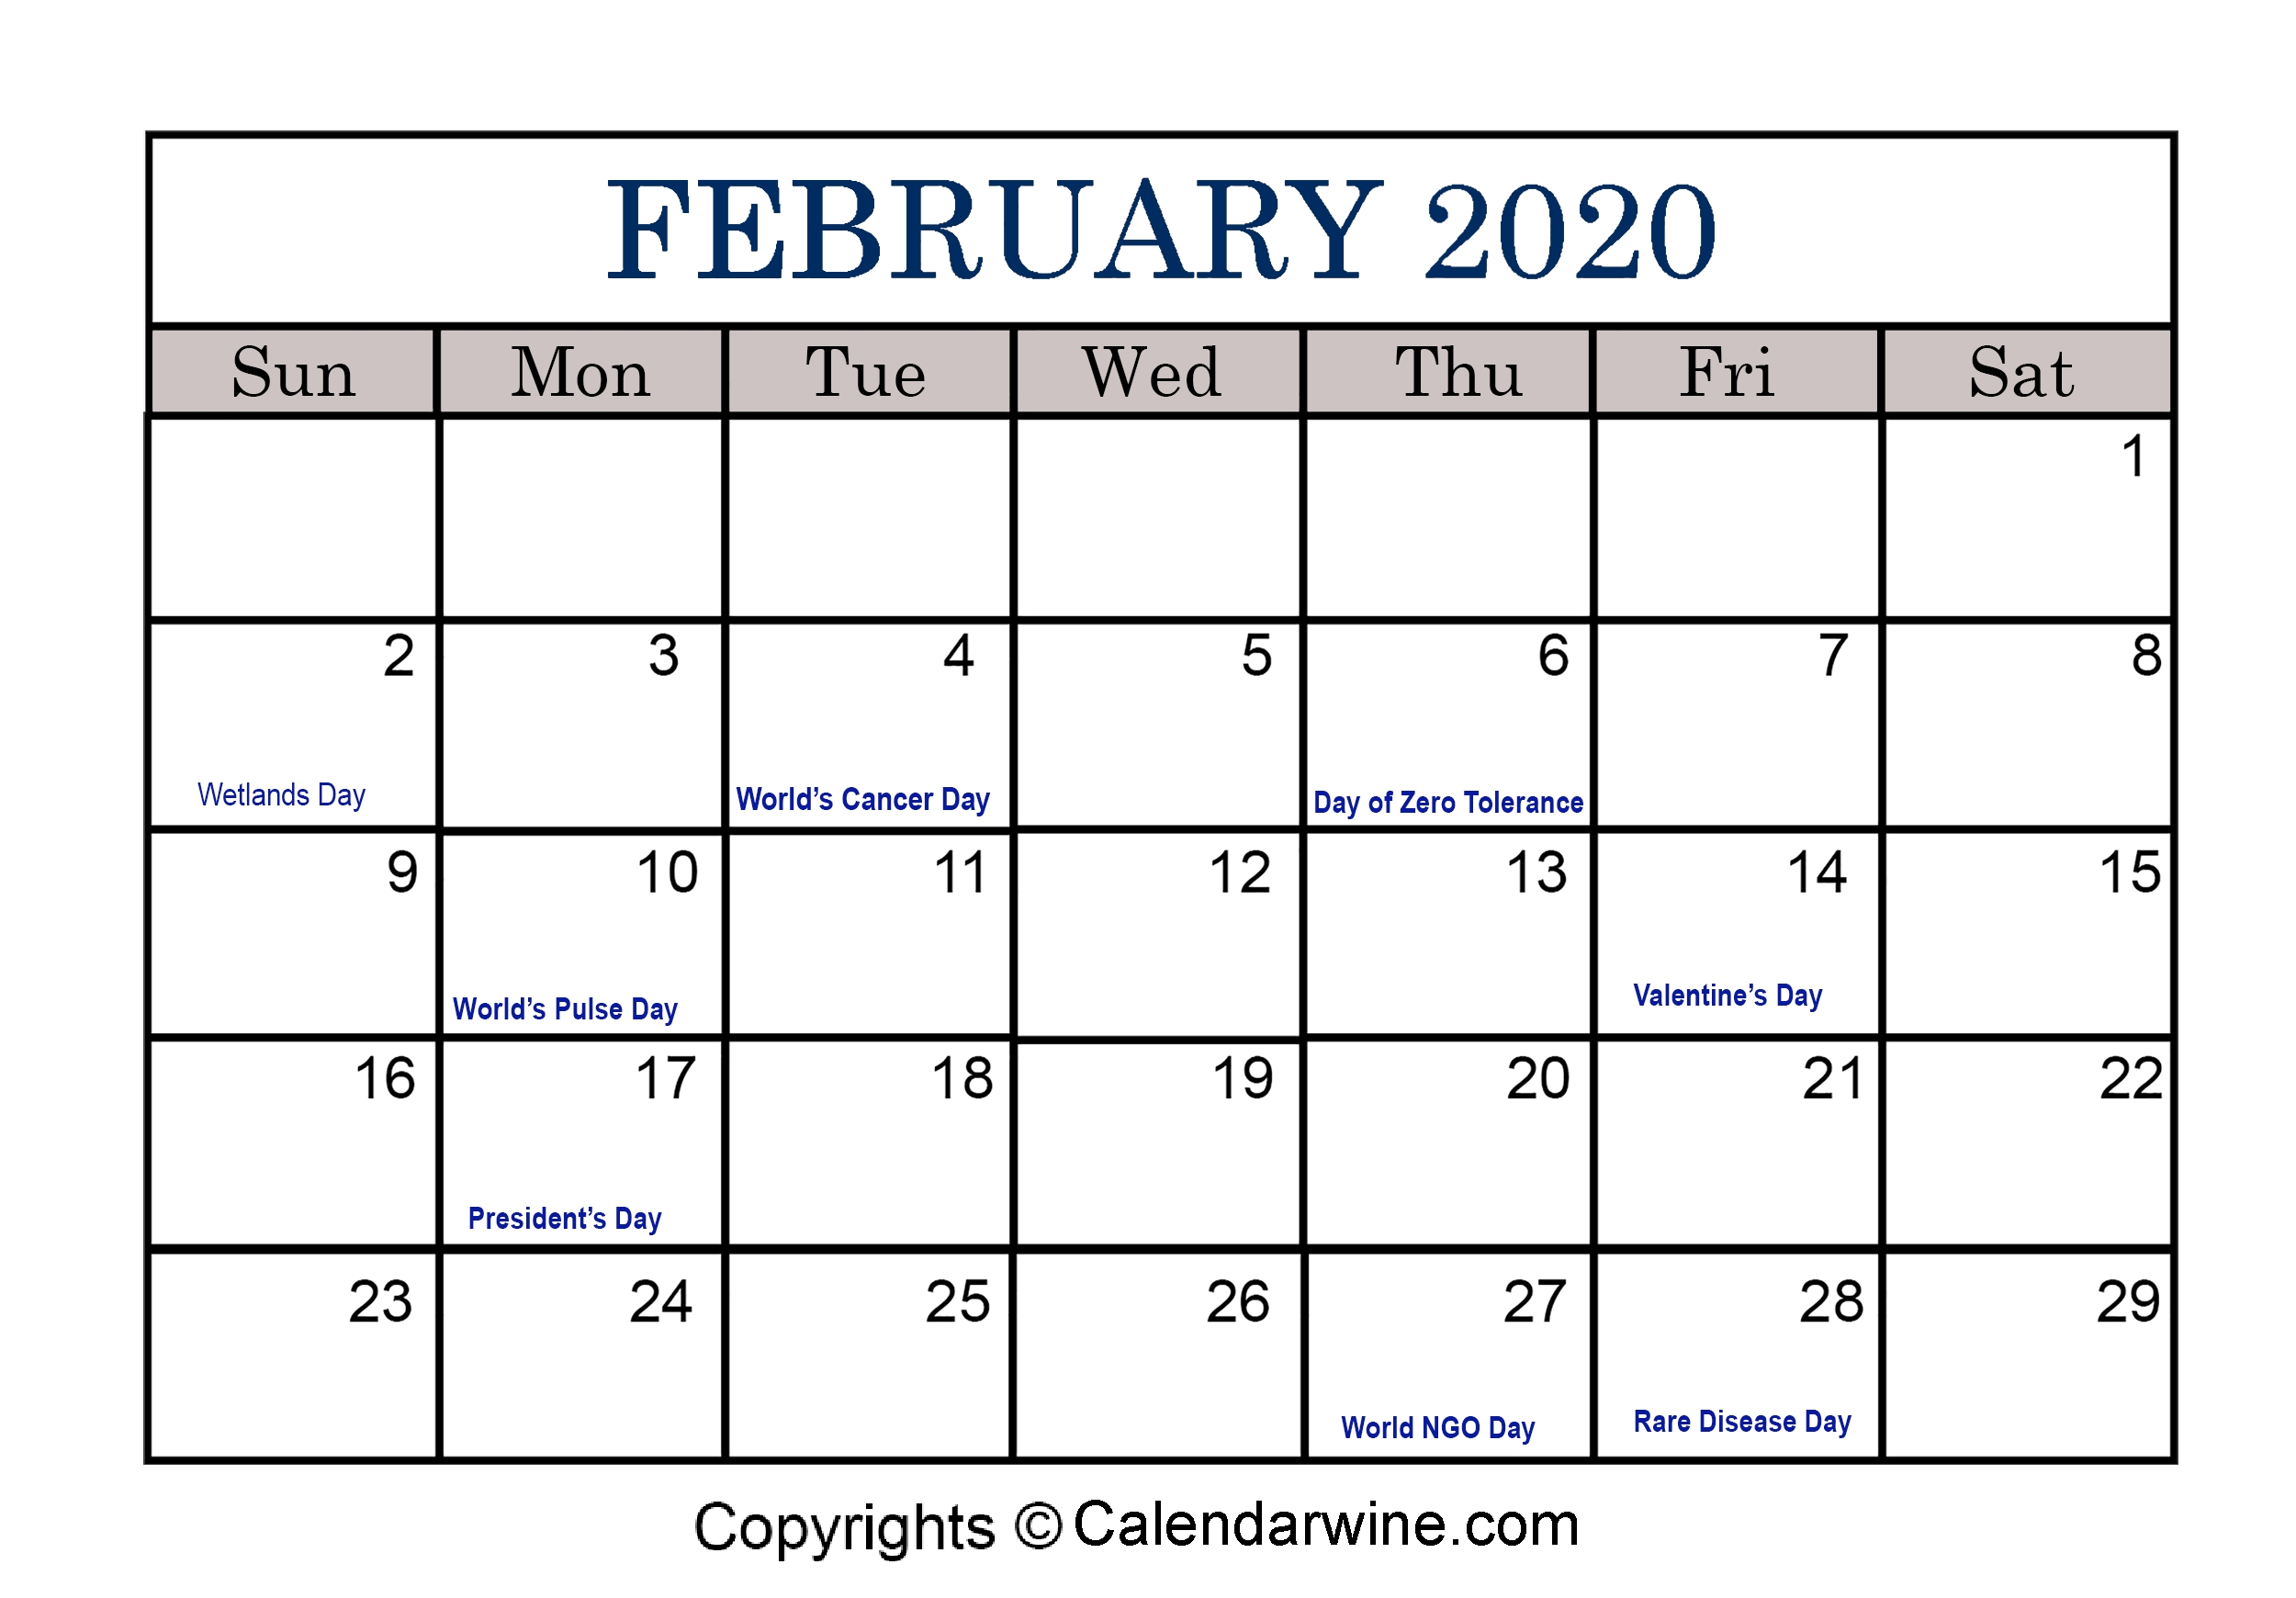 Full List Of February Holidays 2020 For Usa Uk Canada-Jewish Holidays 2020 Calendar